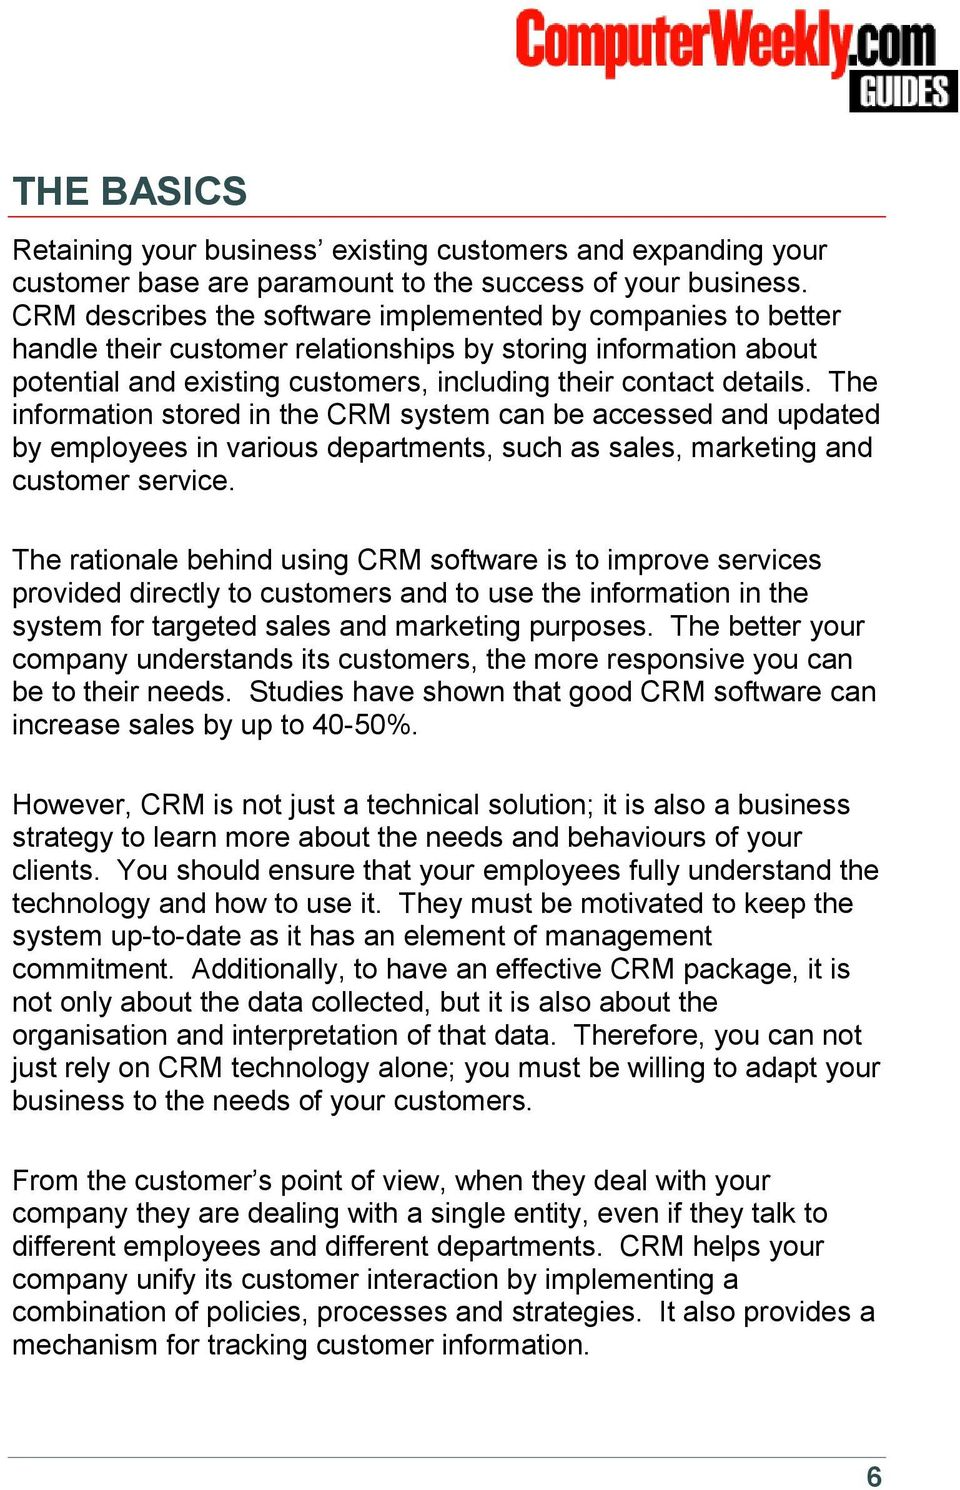 The information stored in the CRM system can be accessed and updated by employees in various departments, such as sales, marketing and customer service.